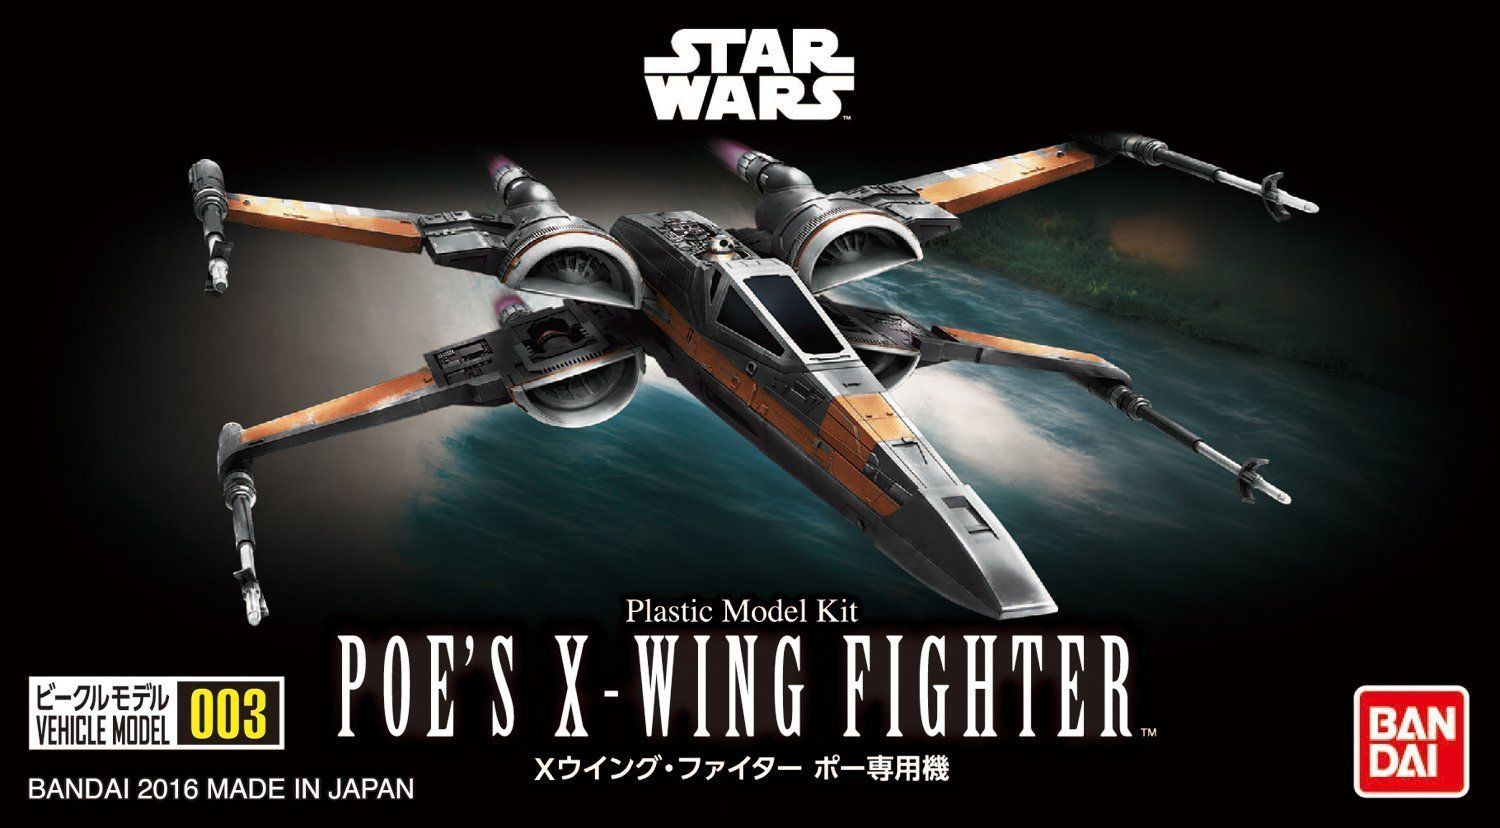 Poe's X-Wing Fighter, Star Wars Plastic Model Kit, Bandai Vehicle Series  #003